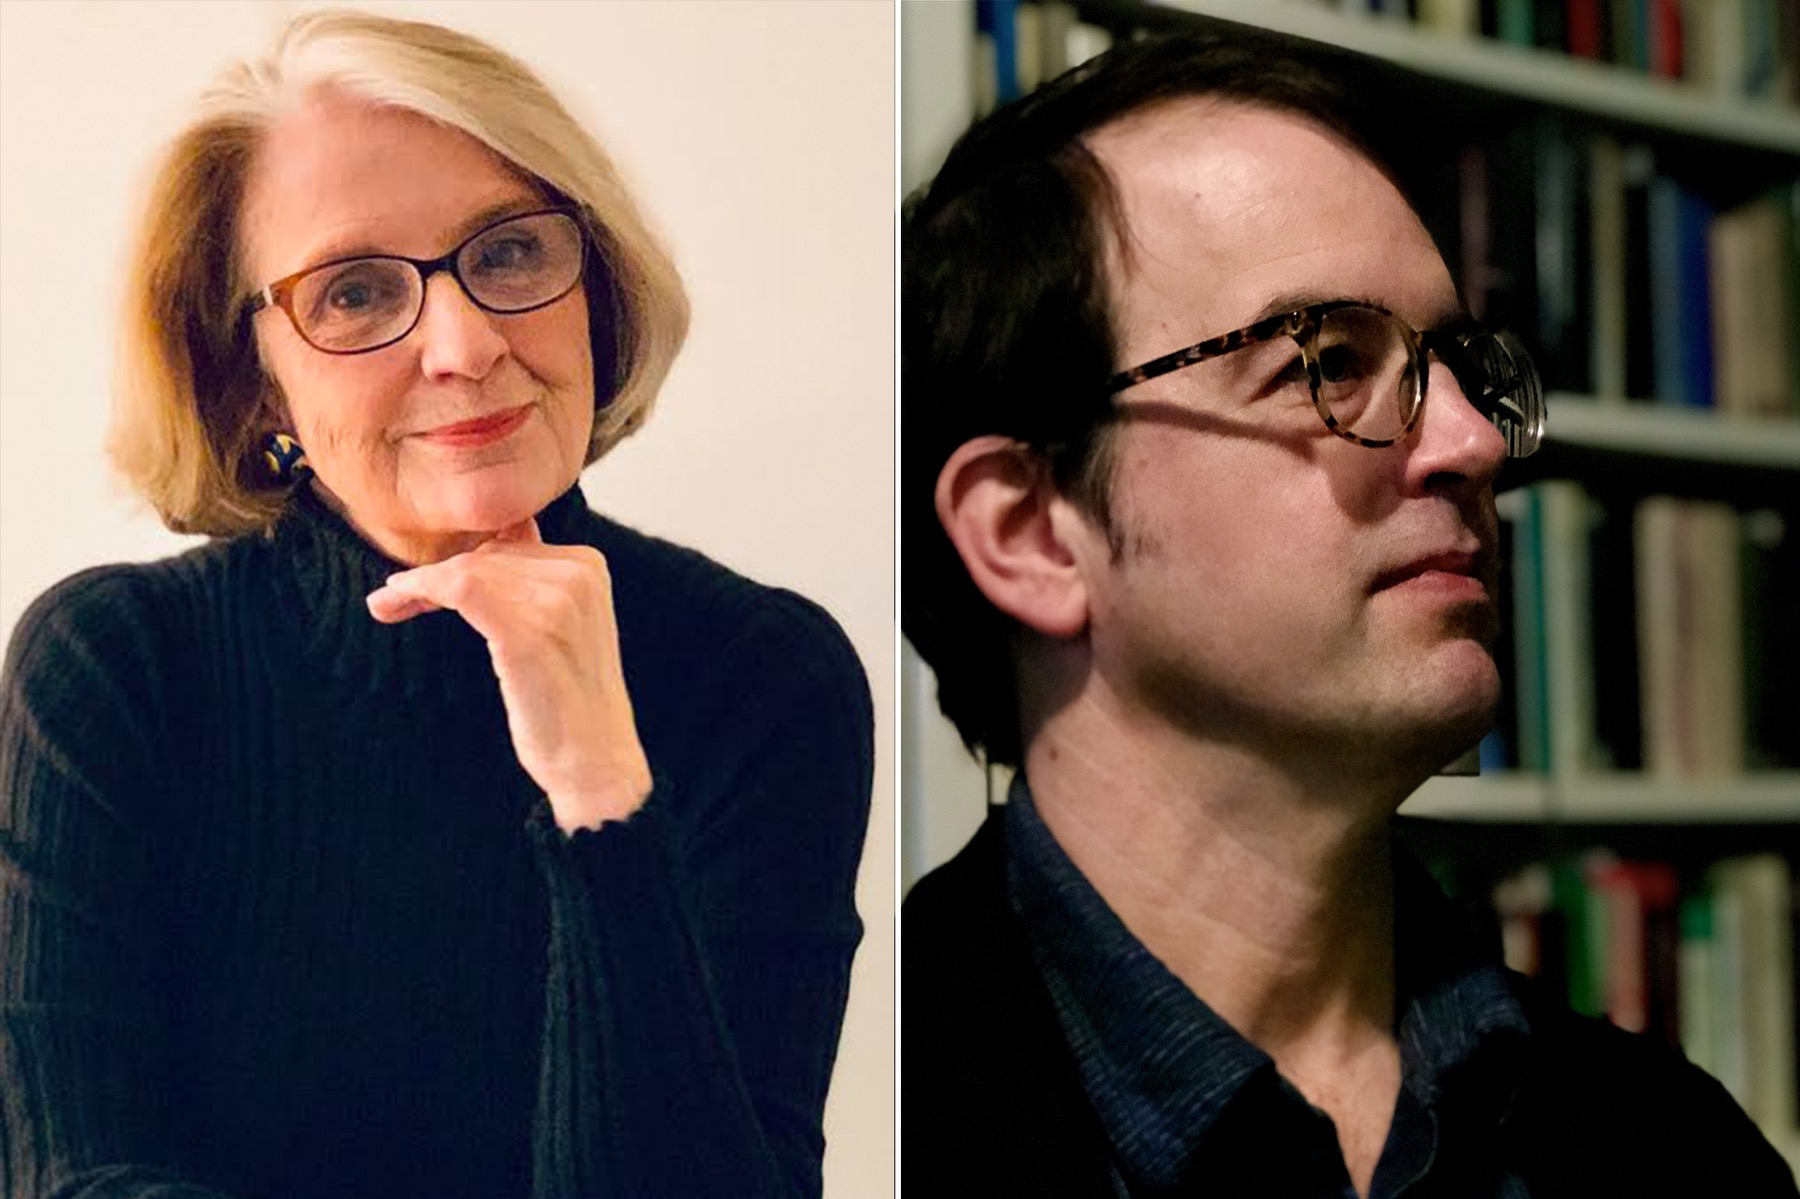 Chicago's Poetry off the Shelf: Susan Kinsolving & Devin Johnston